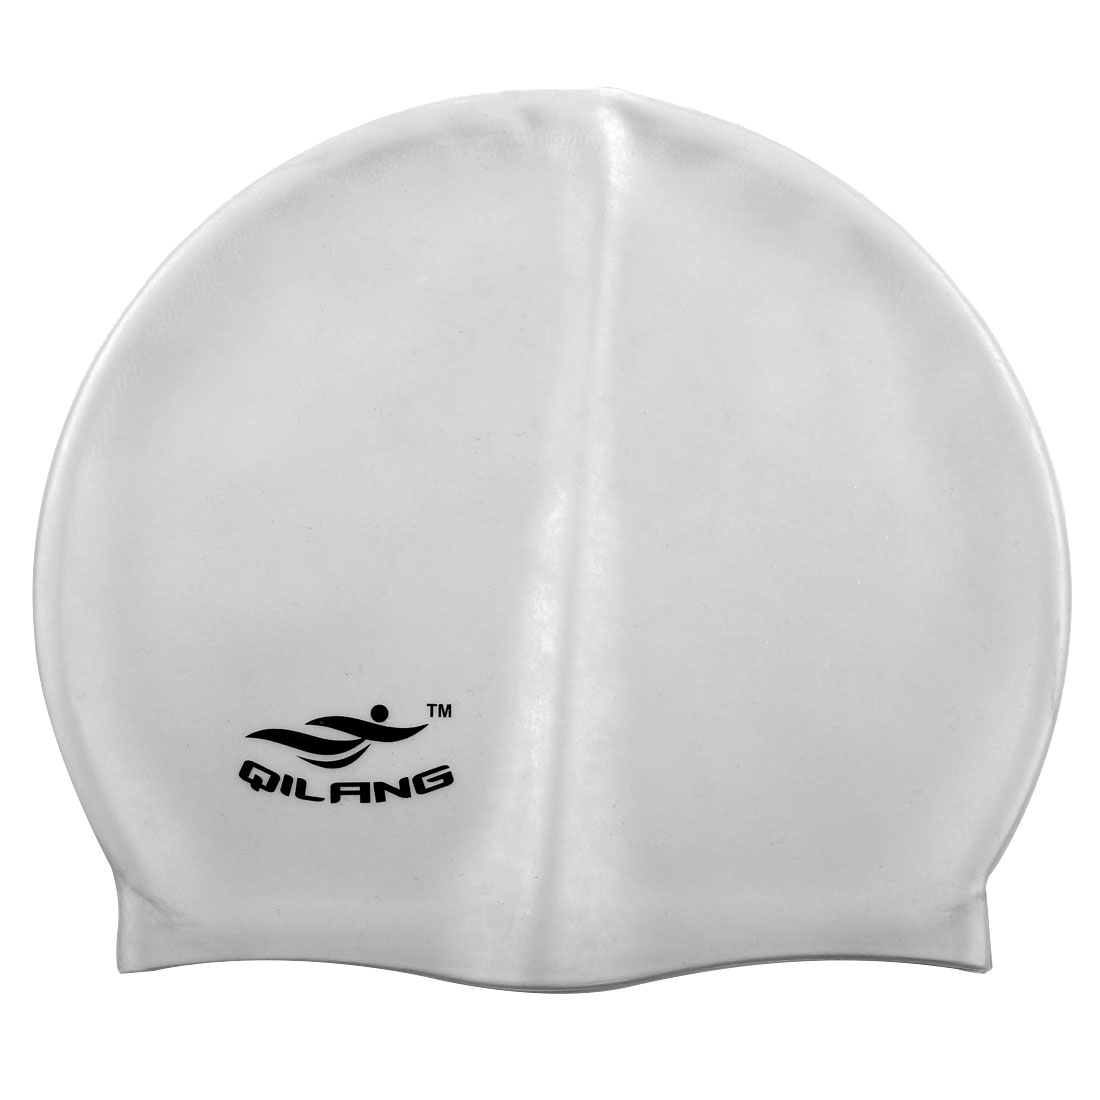 Unisex Silicone Dome Shaped Non-slip Stretchable Swimming Cap Portable Bathing Hat Gray